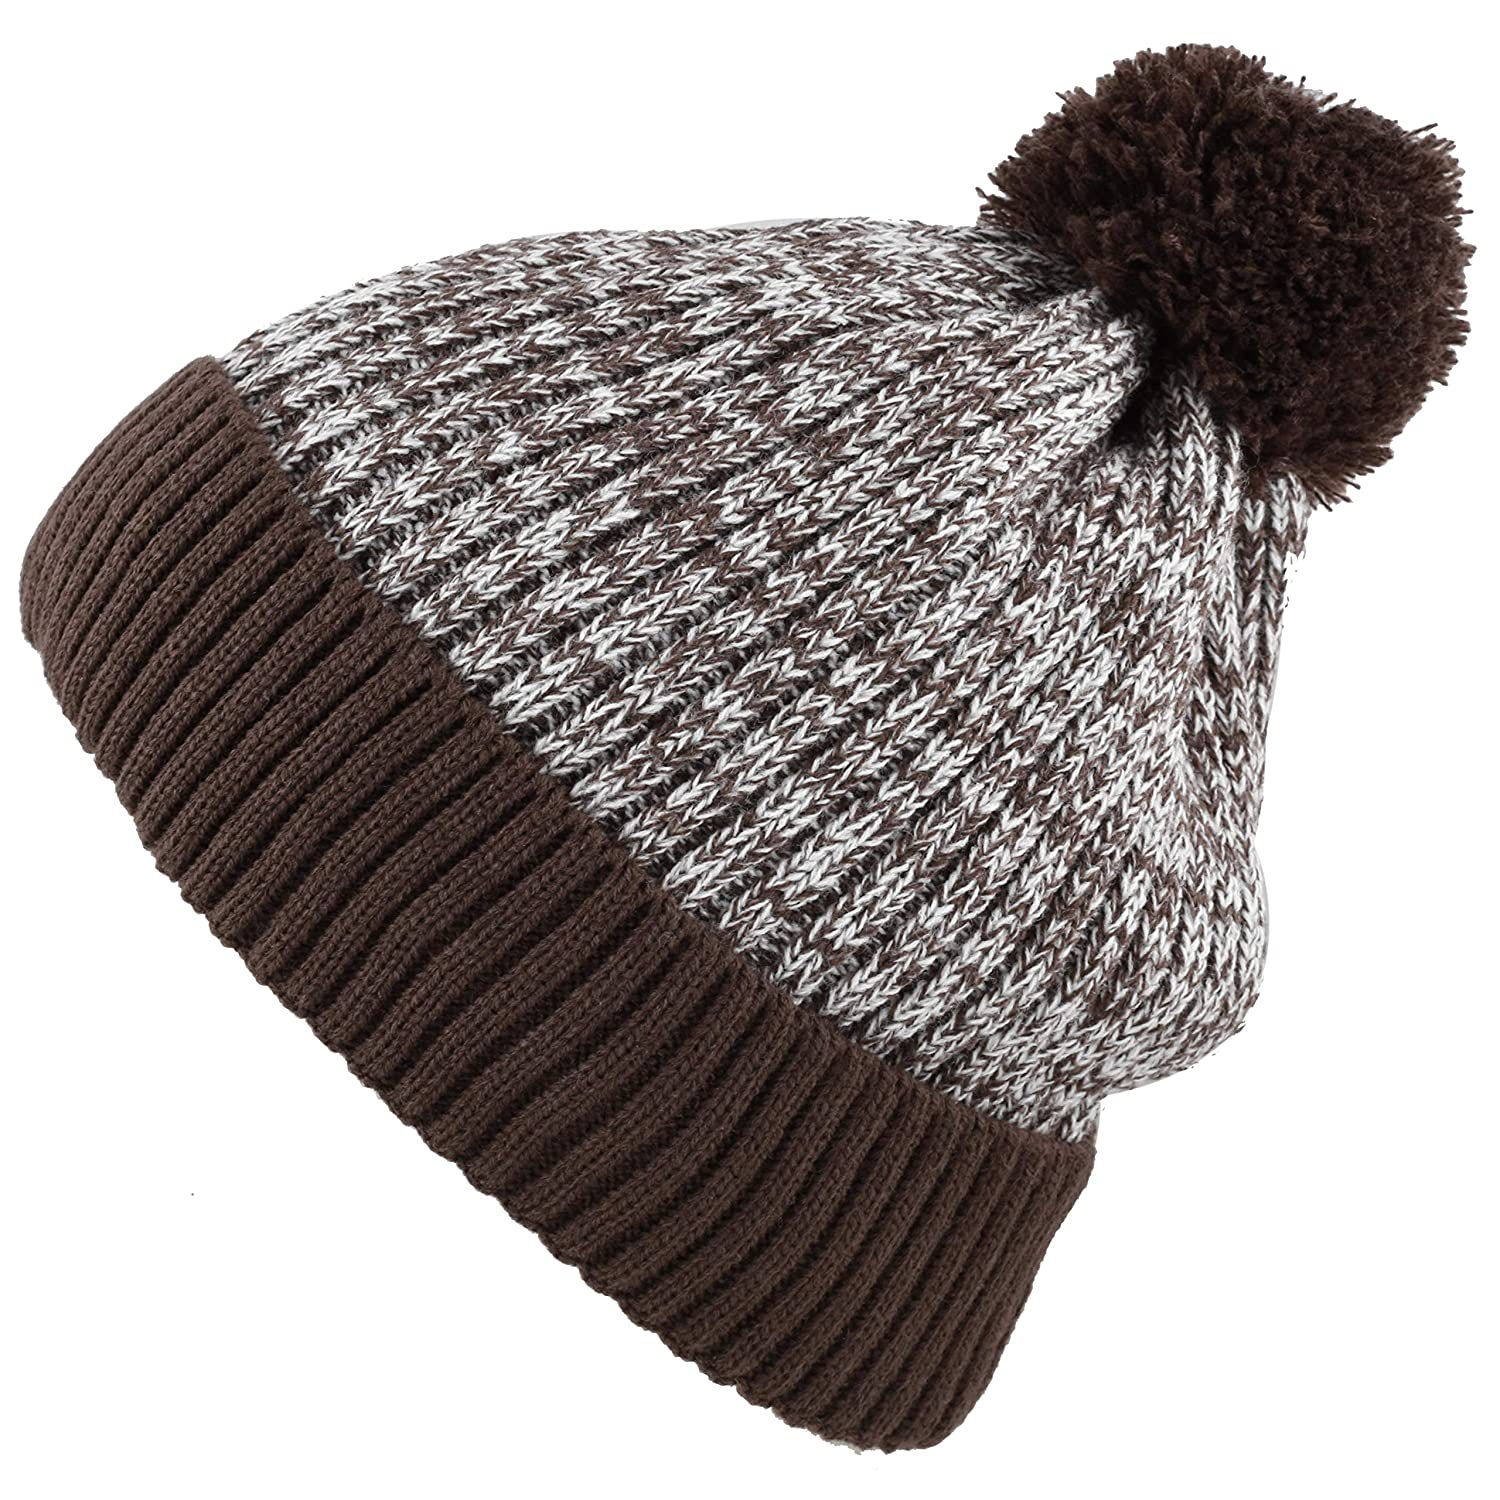 Brown With Pom THE HAT DEPOT Exclusive Ribbed Knit Beanie Warm Fuzzy Thick Fleece Lined Hat Winter Skull Cap Extra Warmth